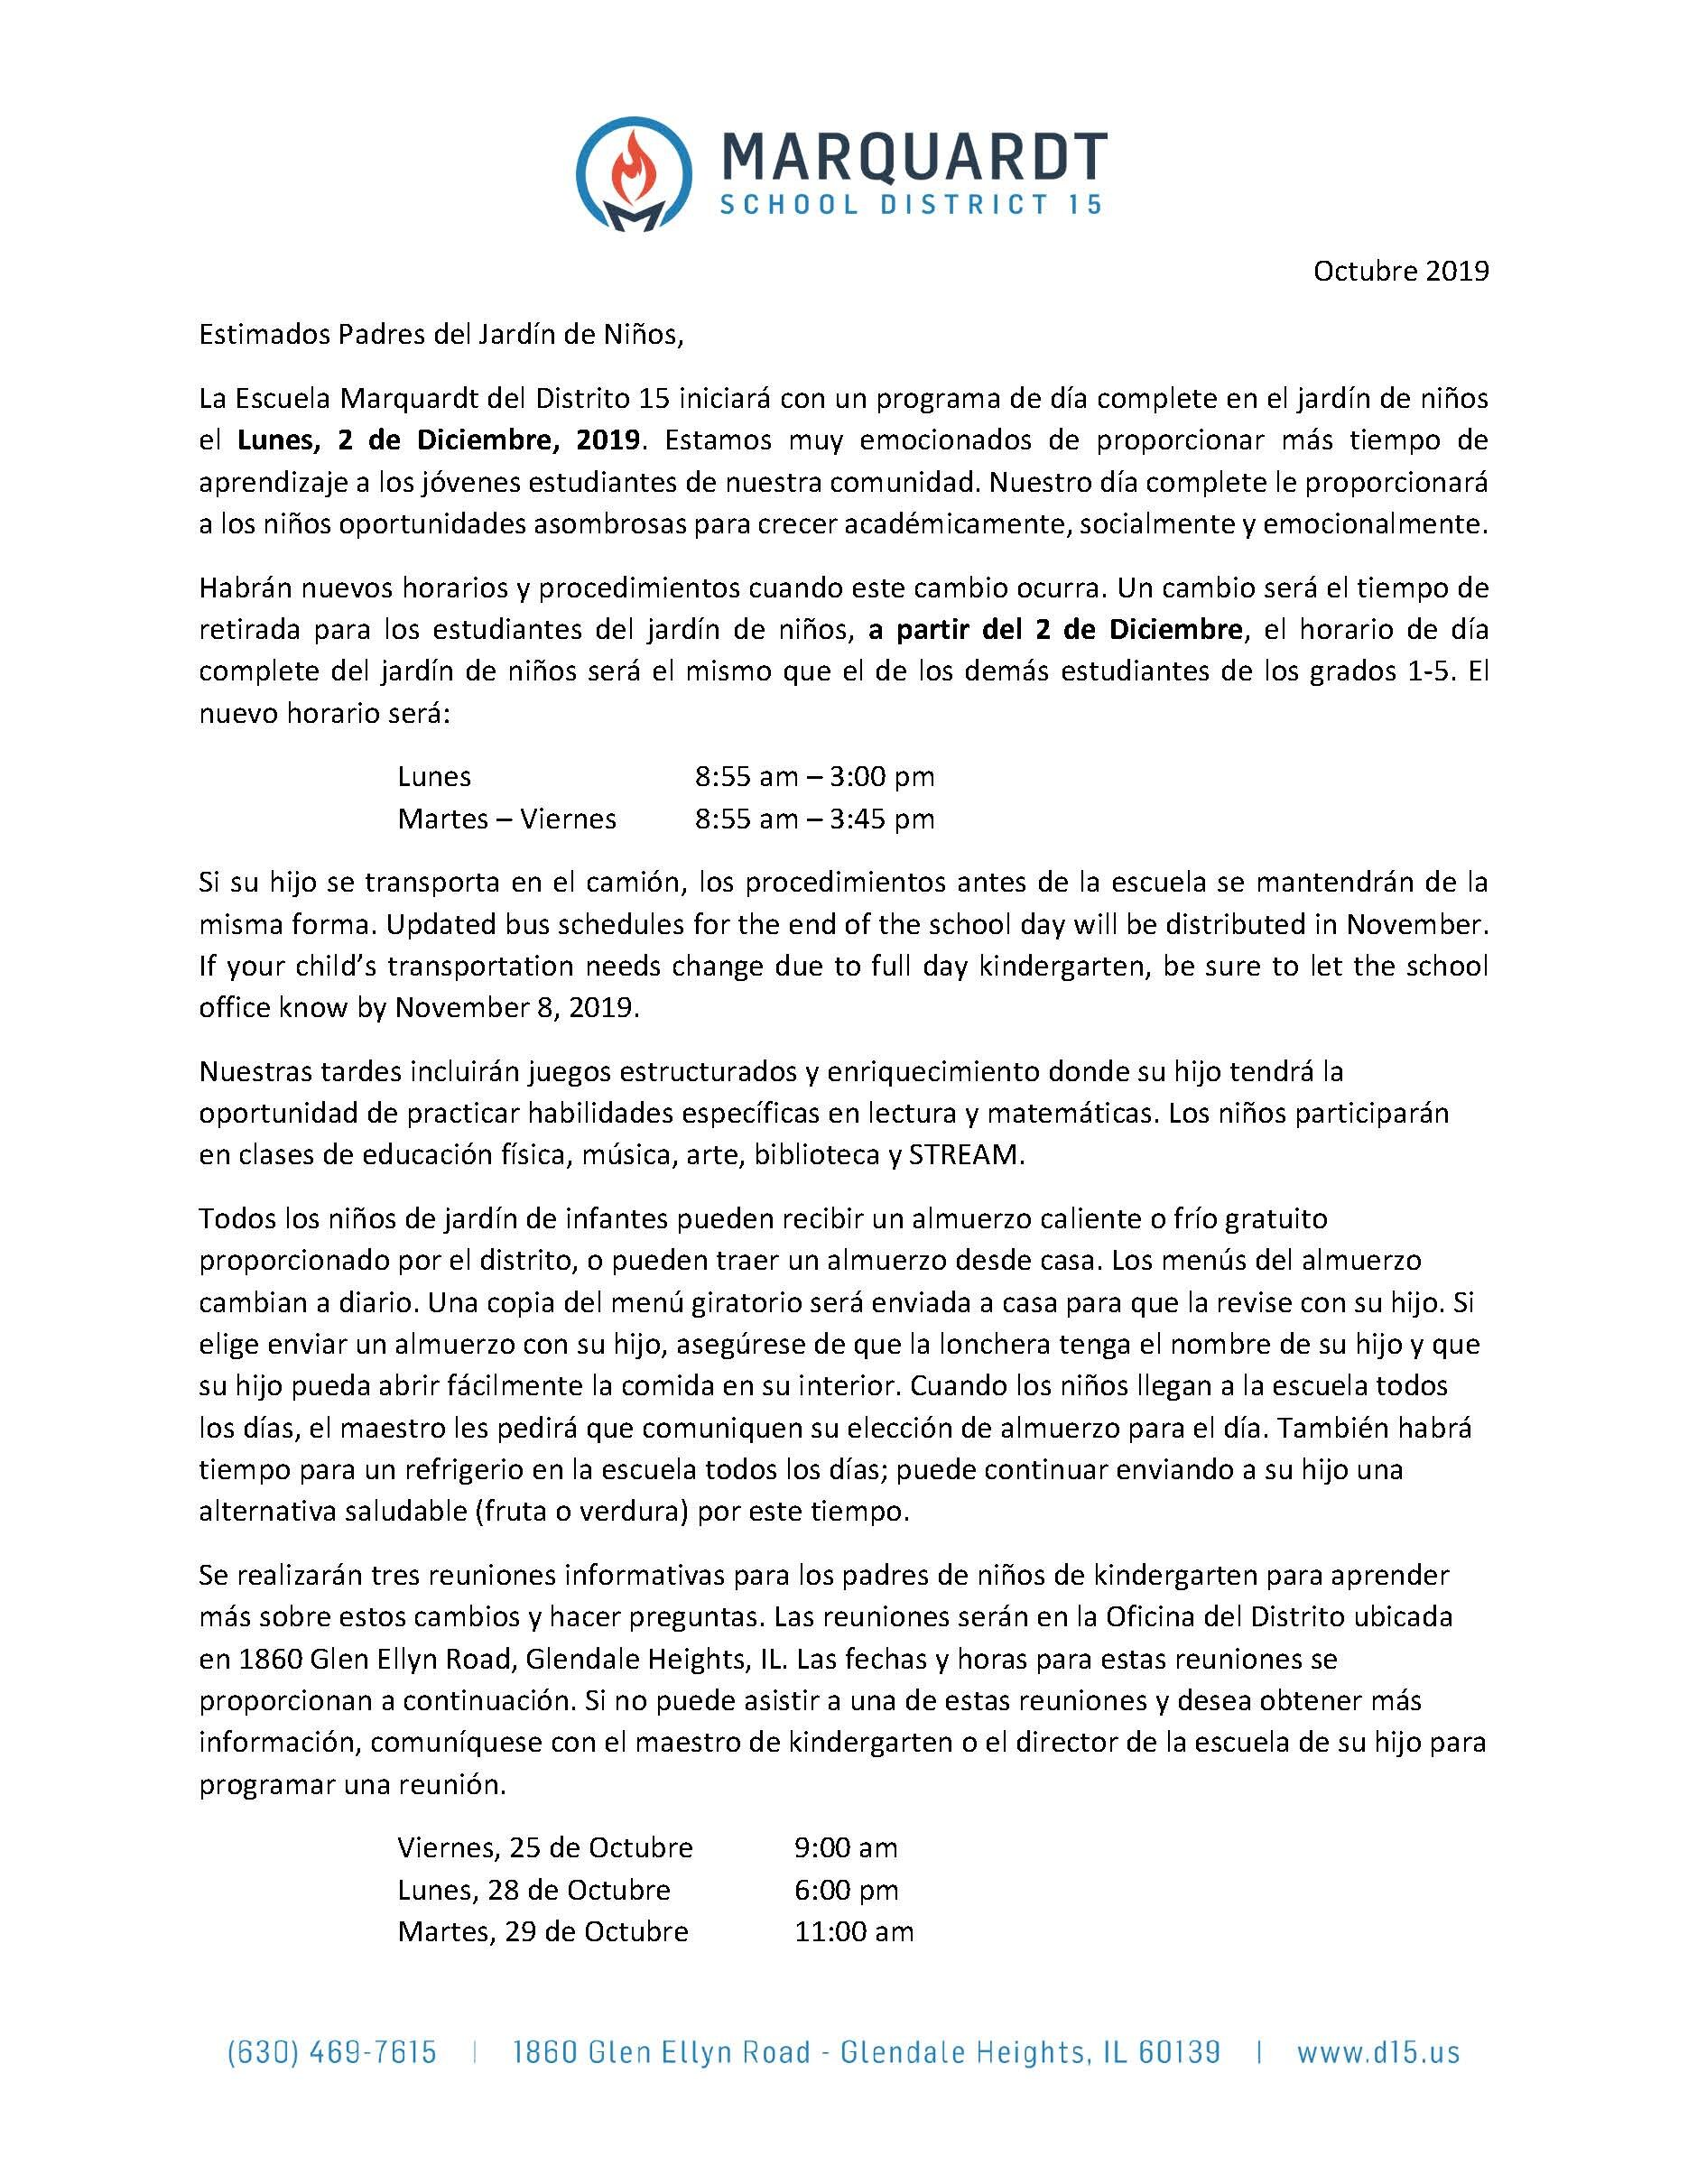 FDK Parent Letter Spanish_Page_1.jpg